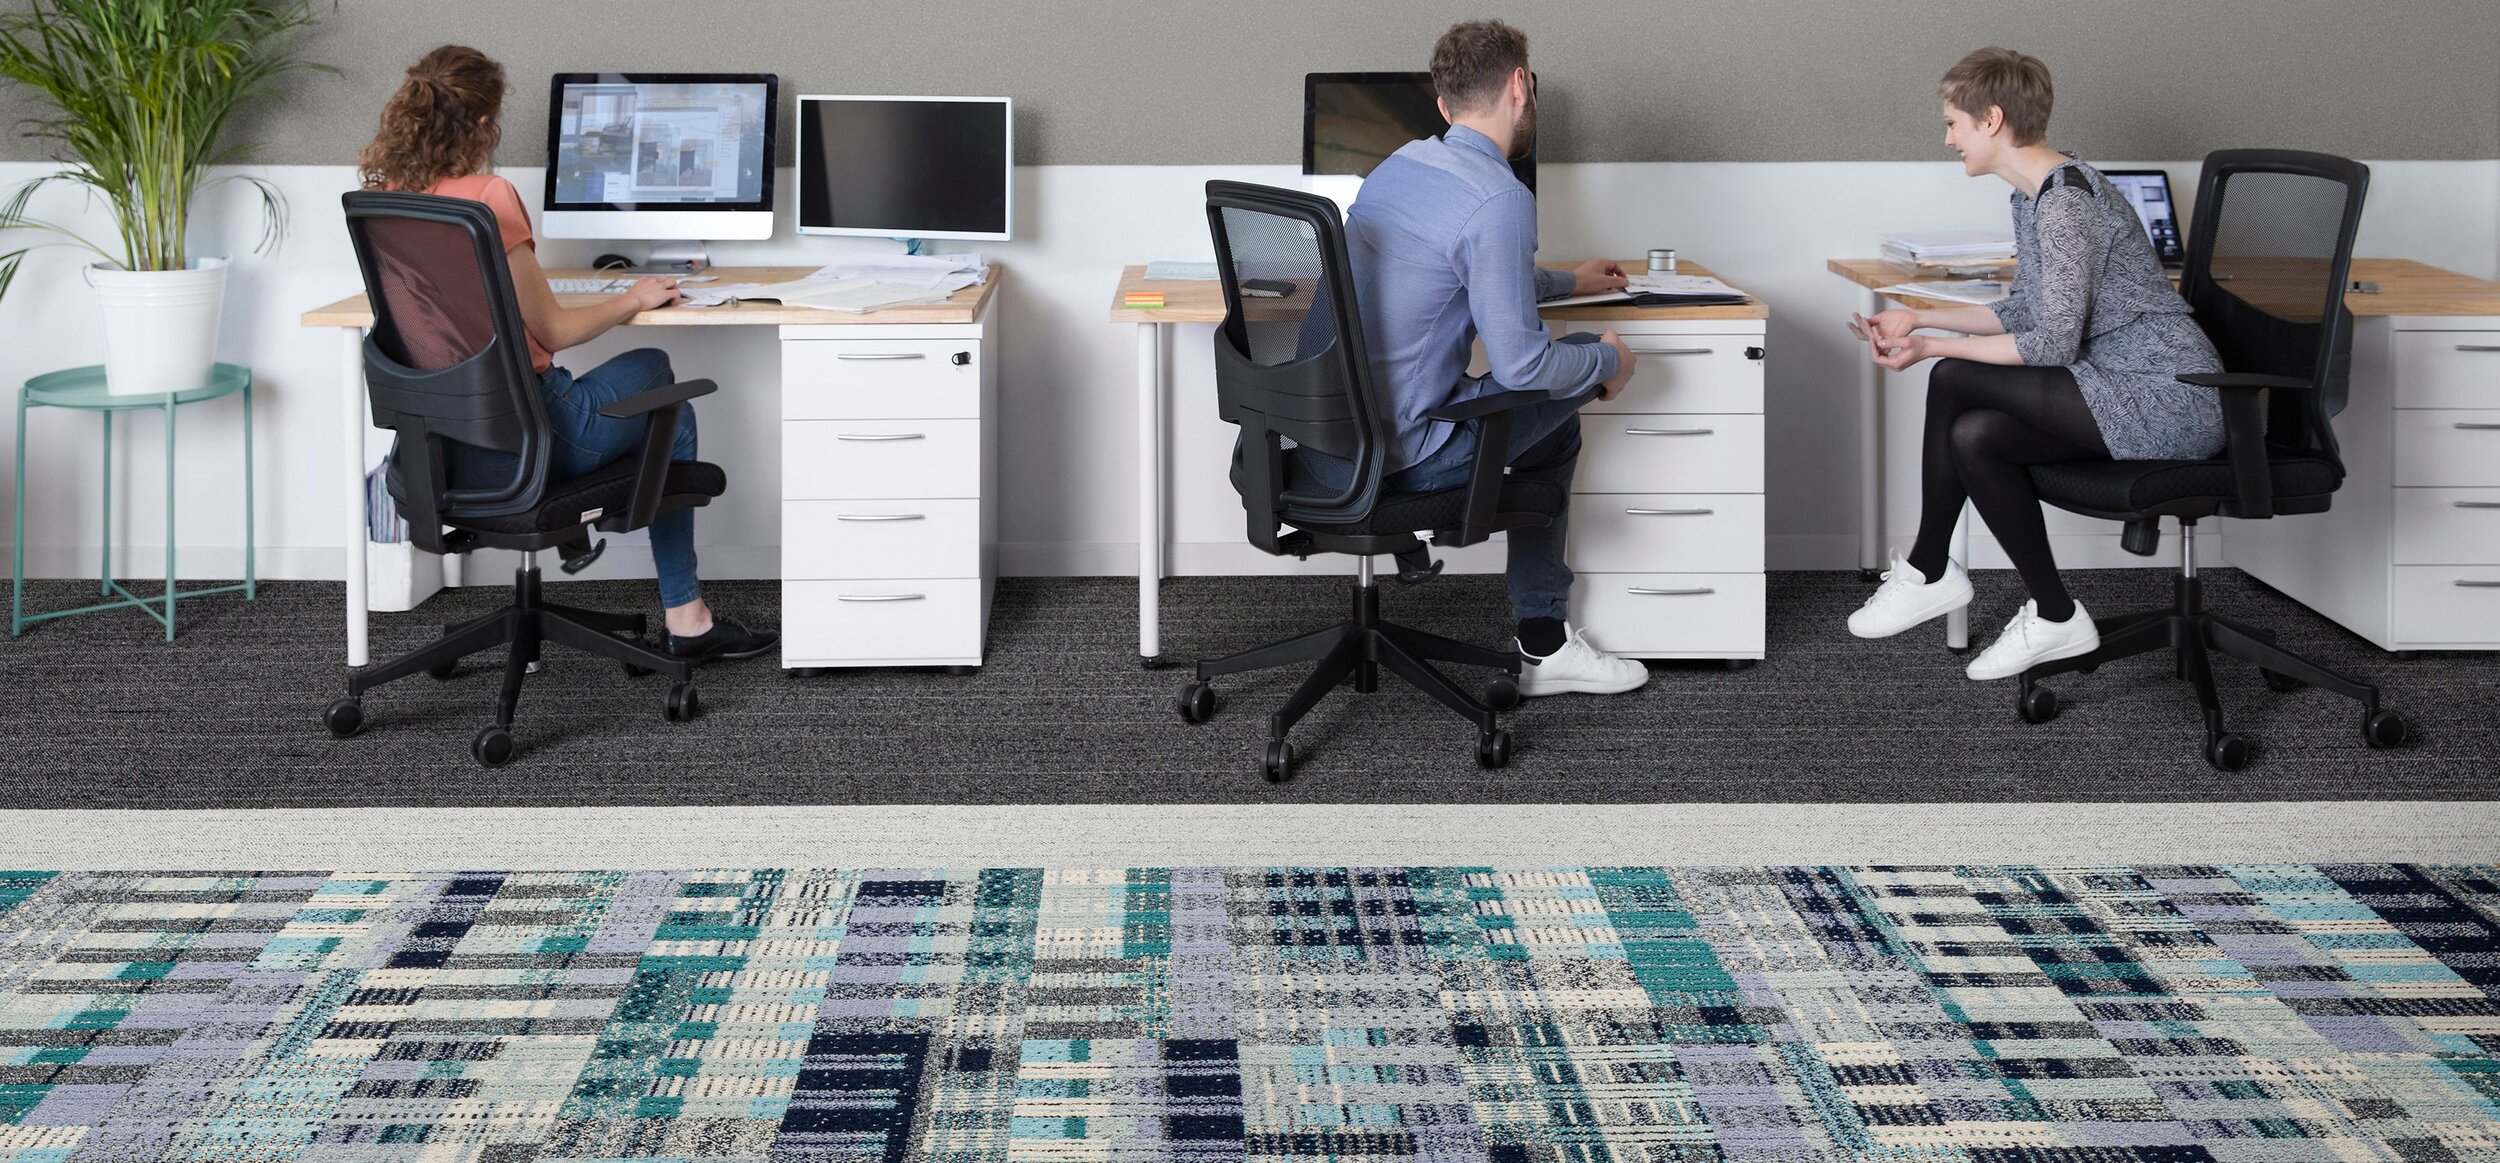 Interface, Inc., is a global manufacturer of commercial flooring.